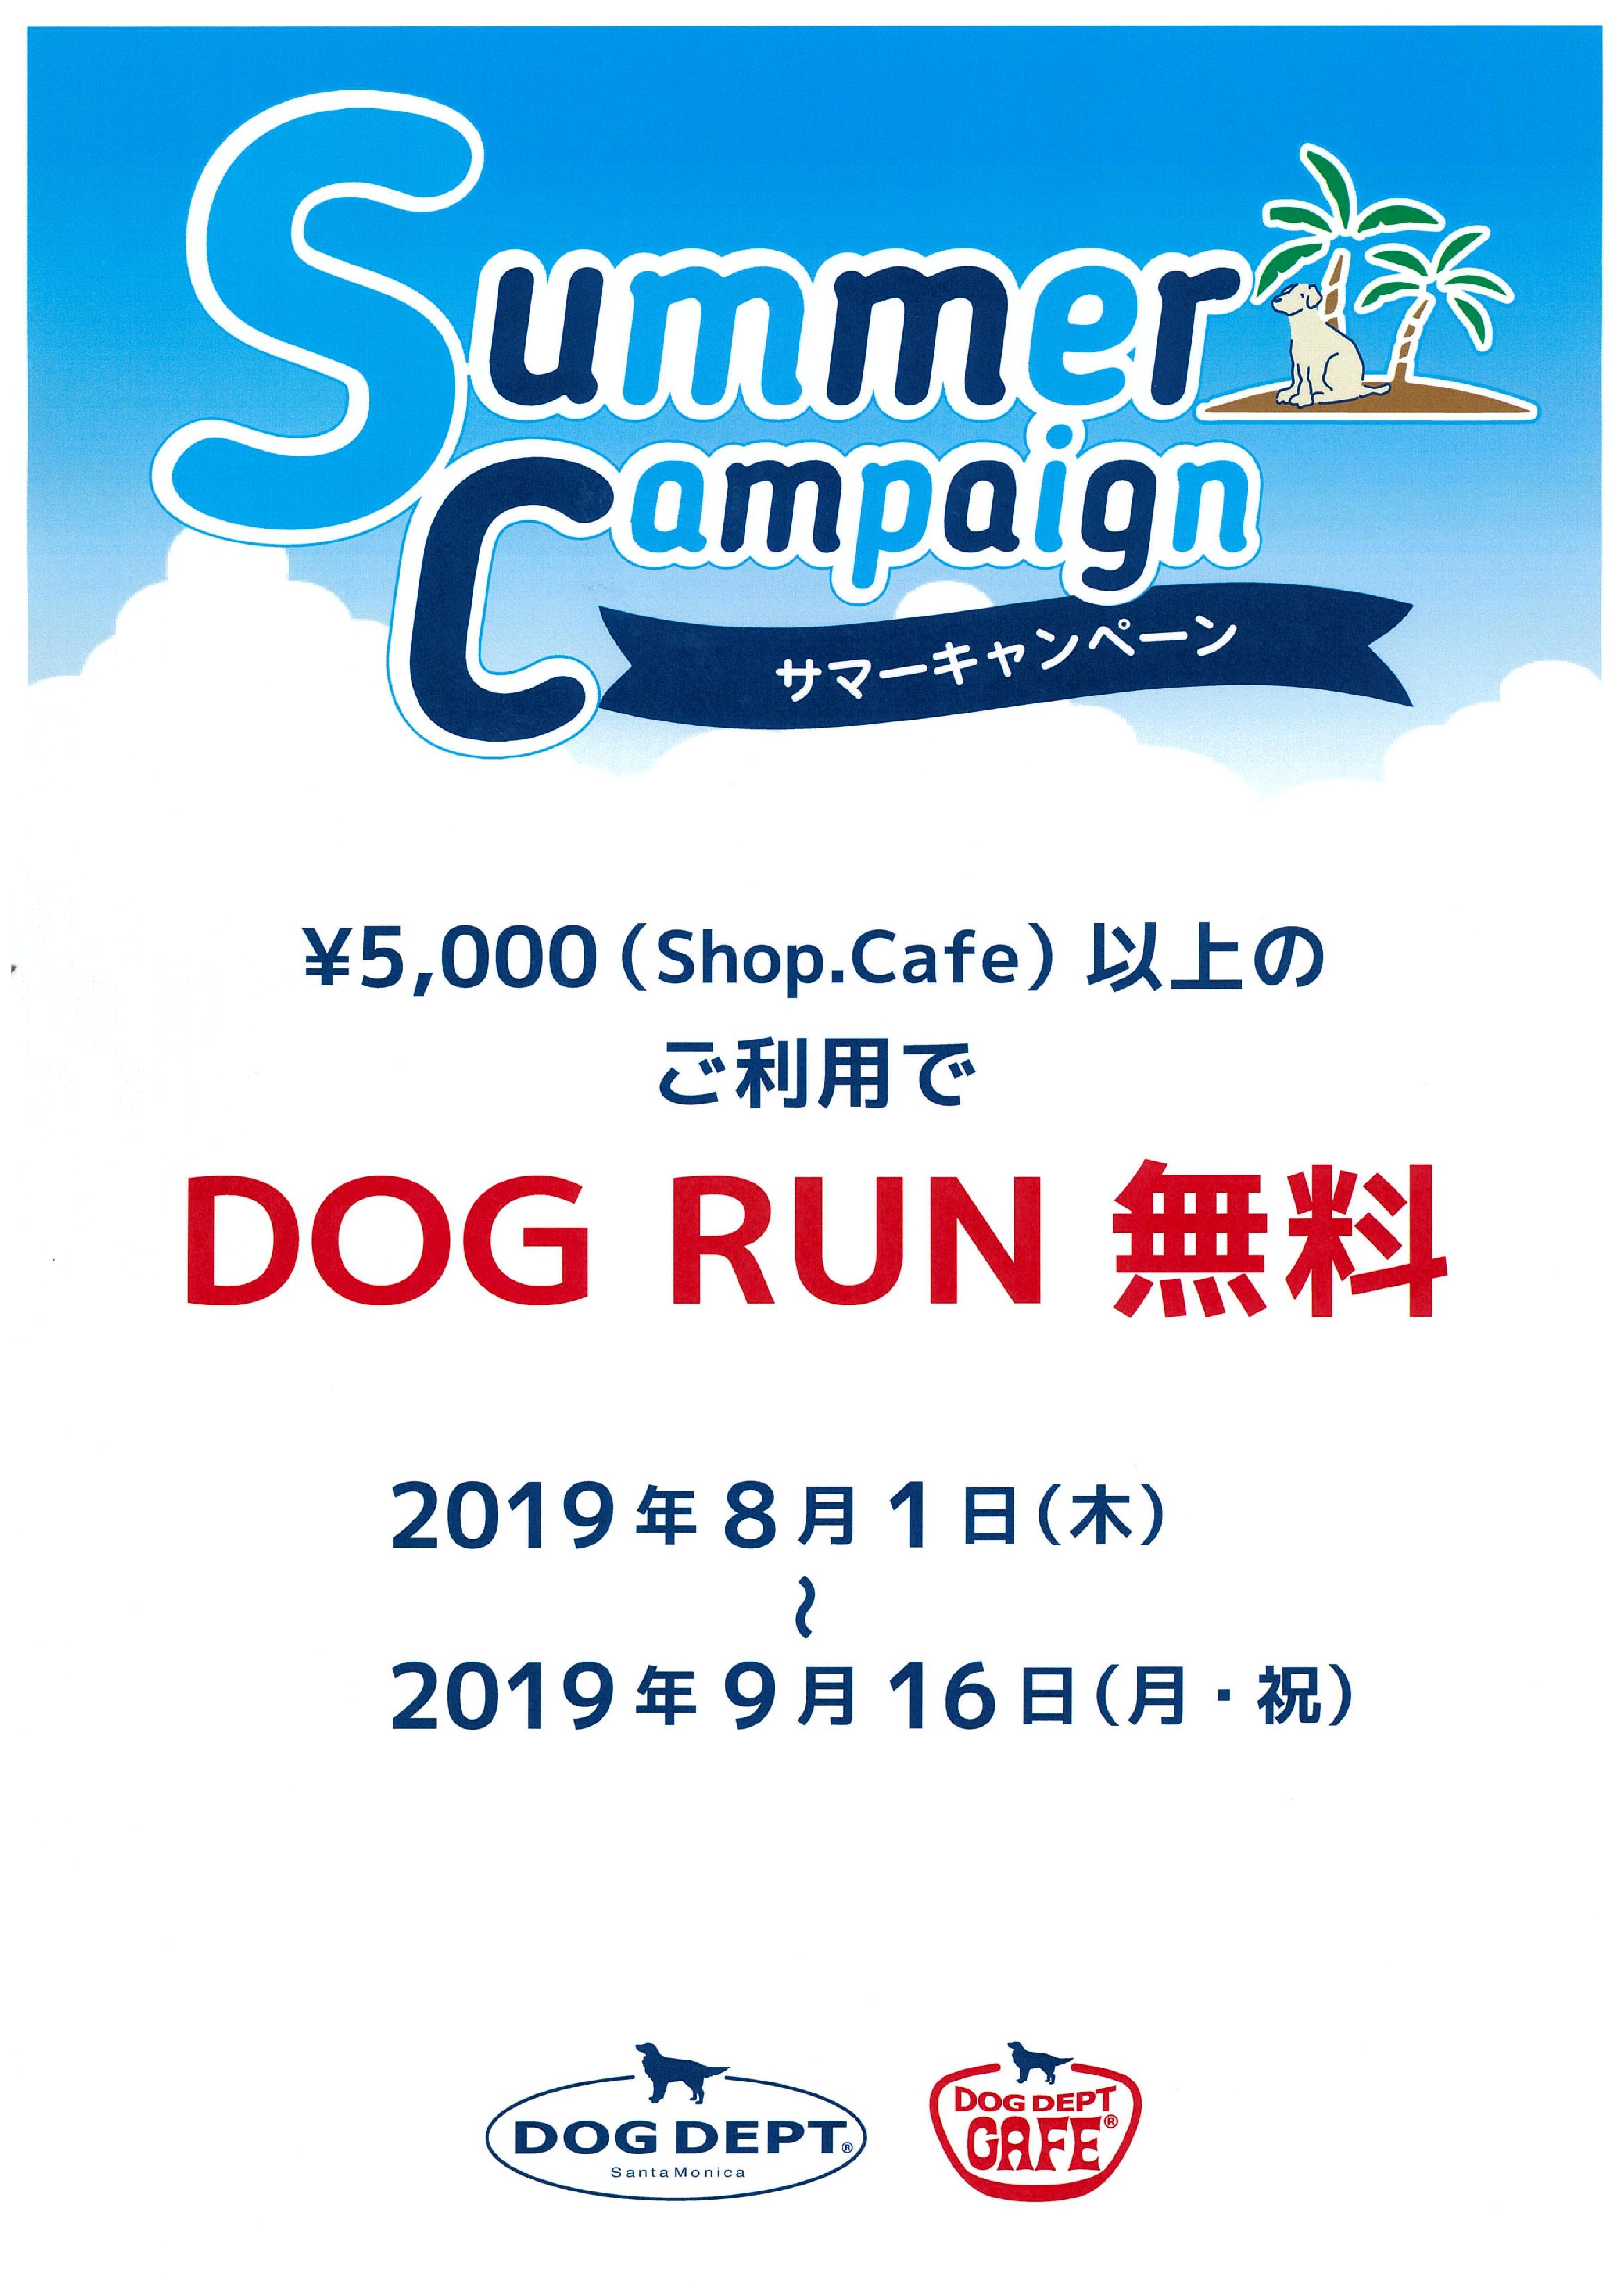 20190730123038_aaapage_1